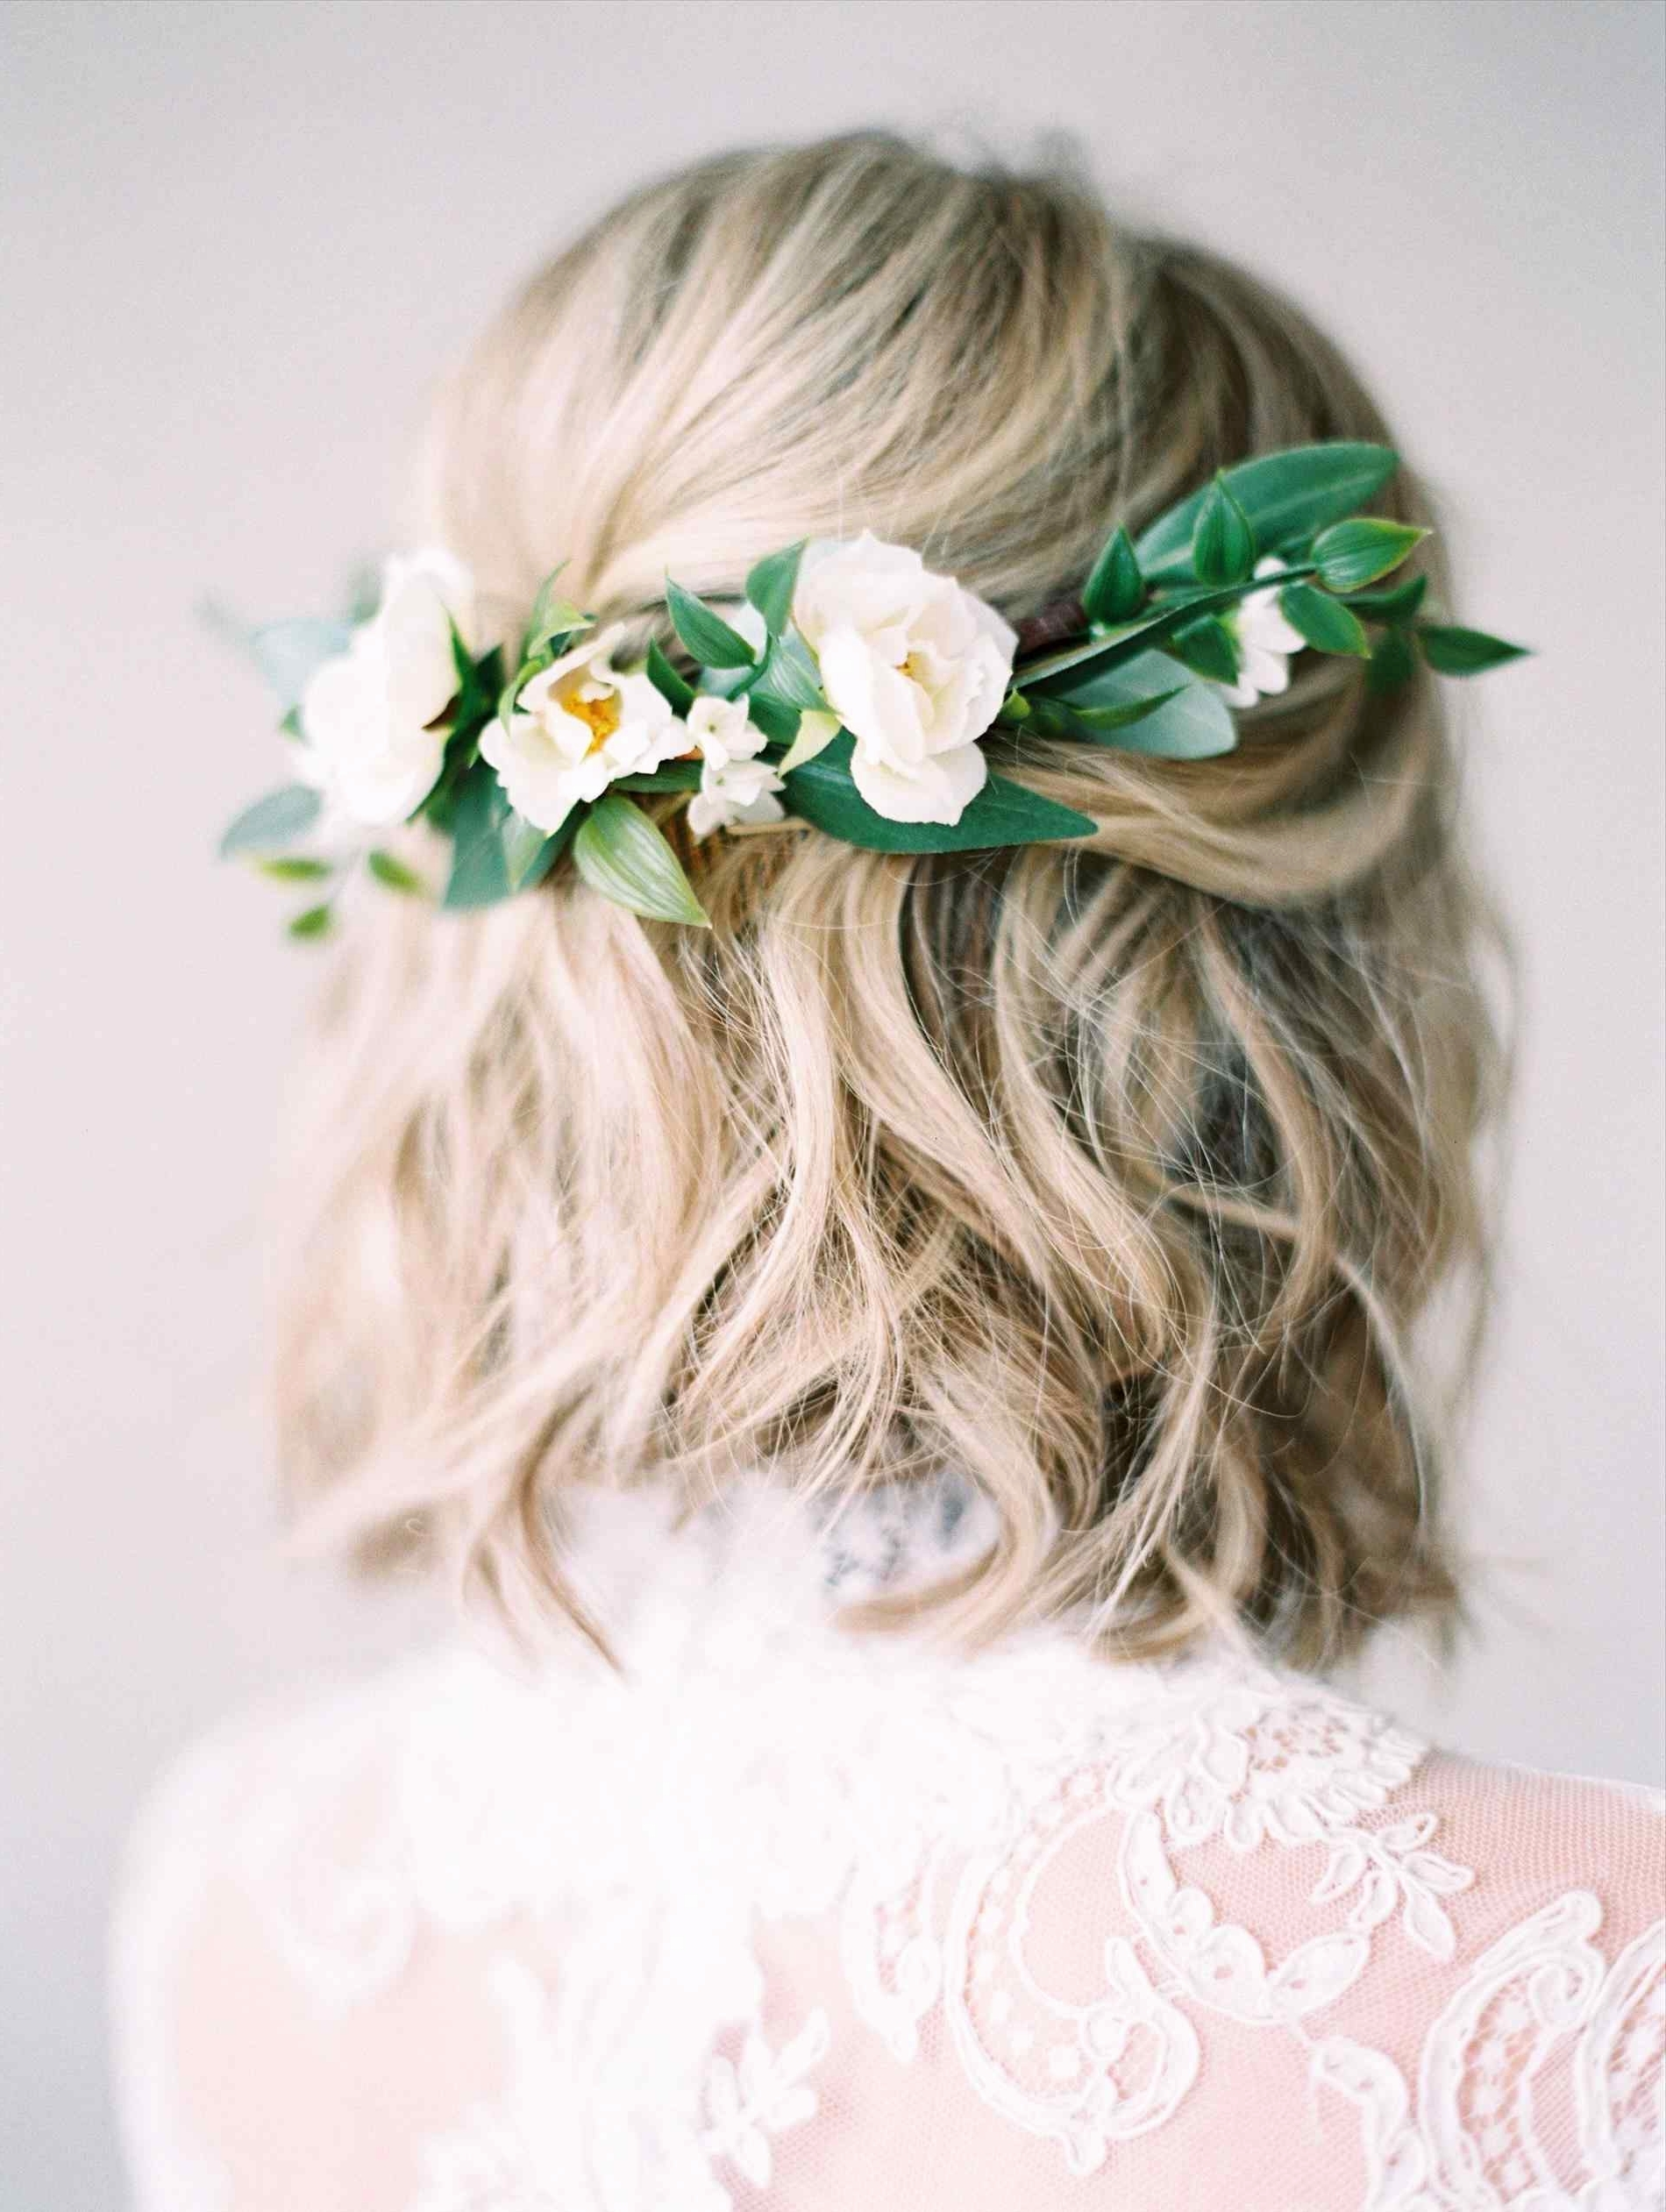 Short Blonde Wedding Hairstyles Lovely Blonde Wedding Hair With With Popular Wedding Hairstyles For Short Blonde Hair (View 13 of 15)